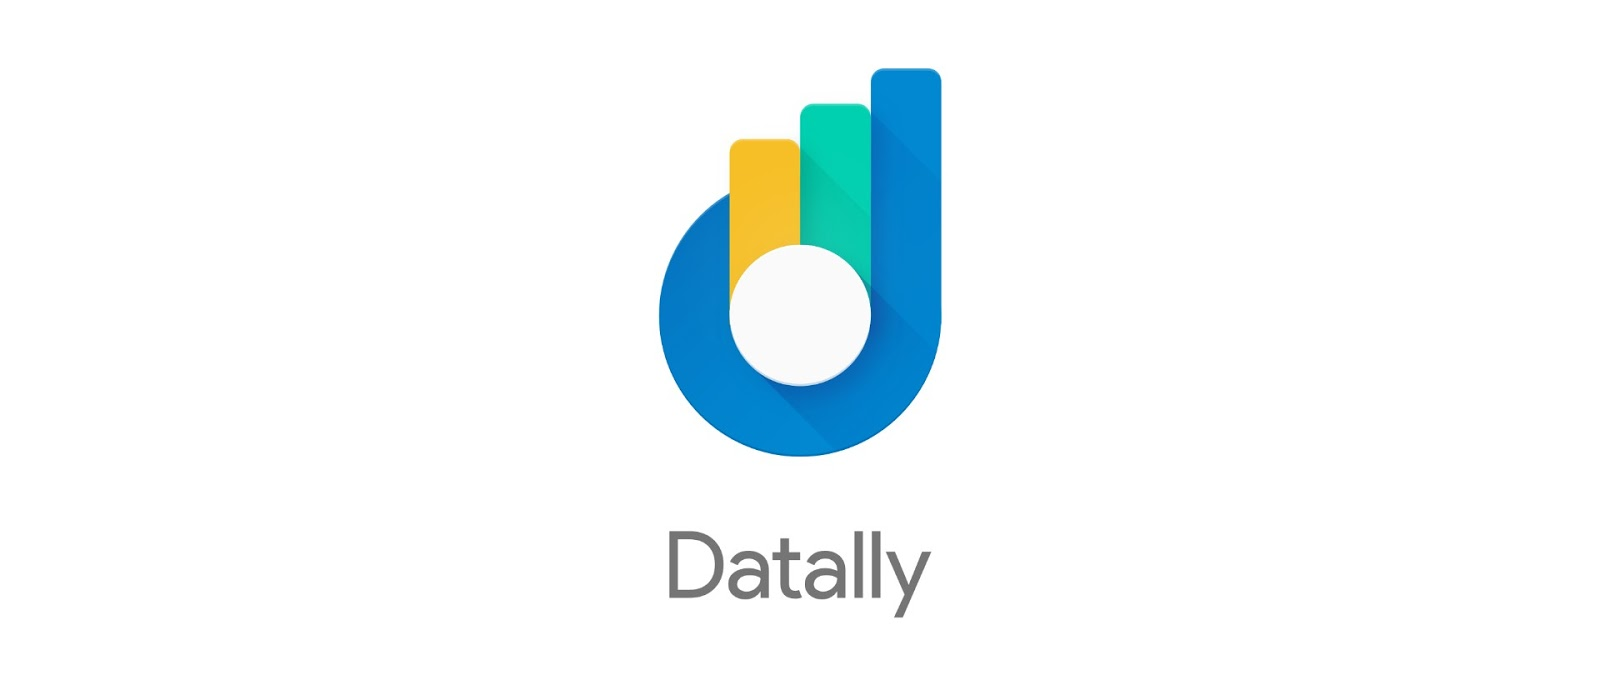 Google's Datally wallpaper